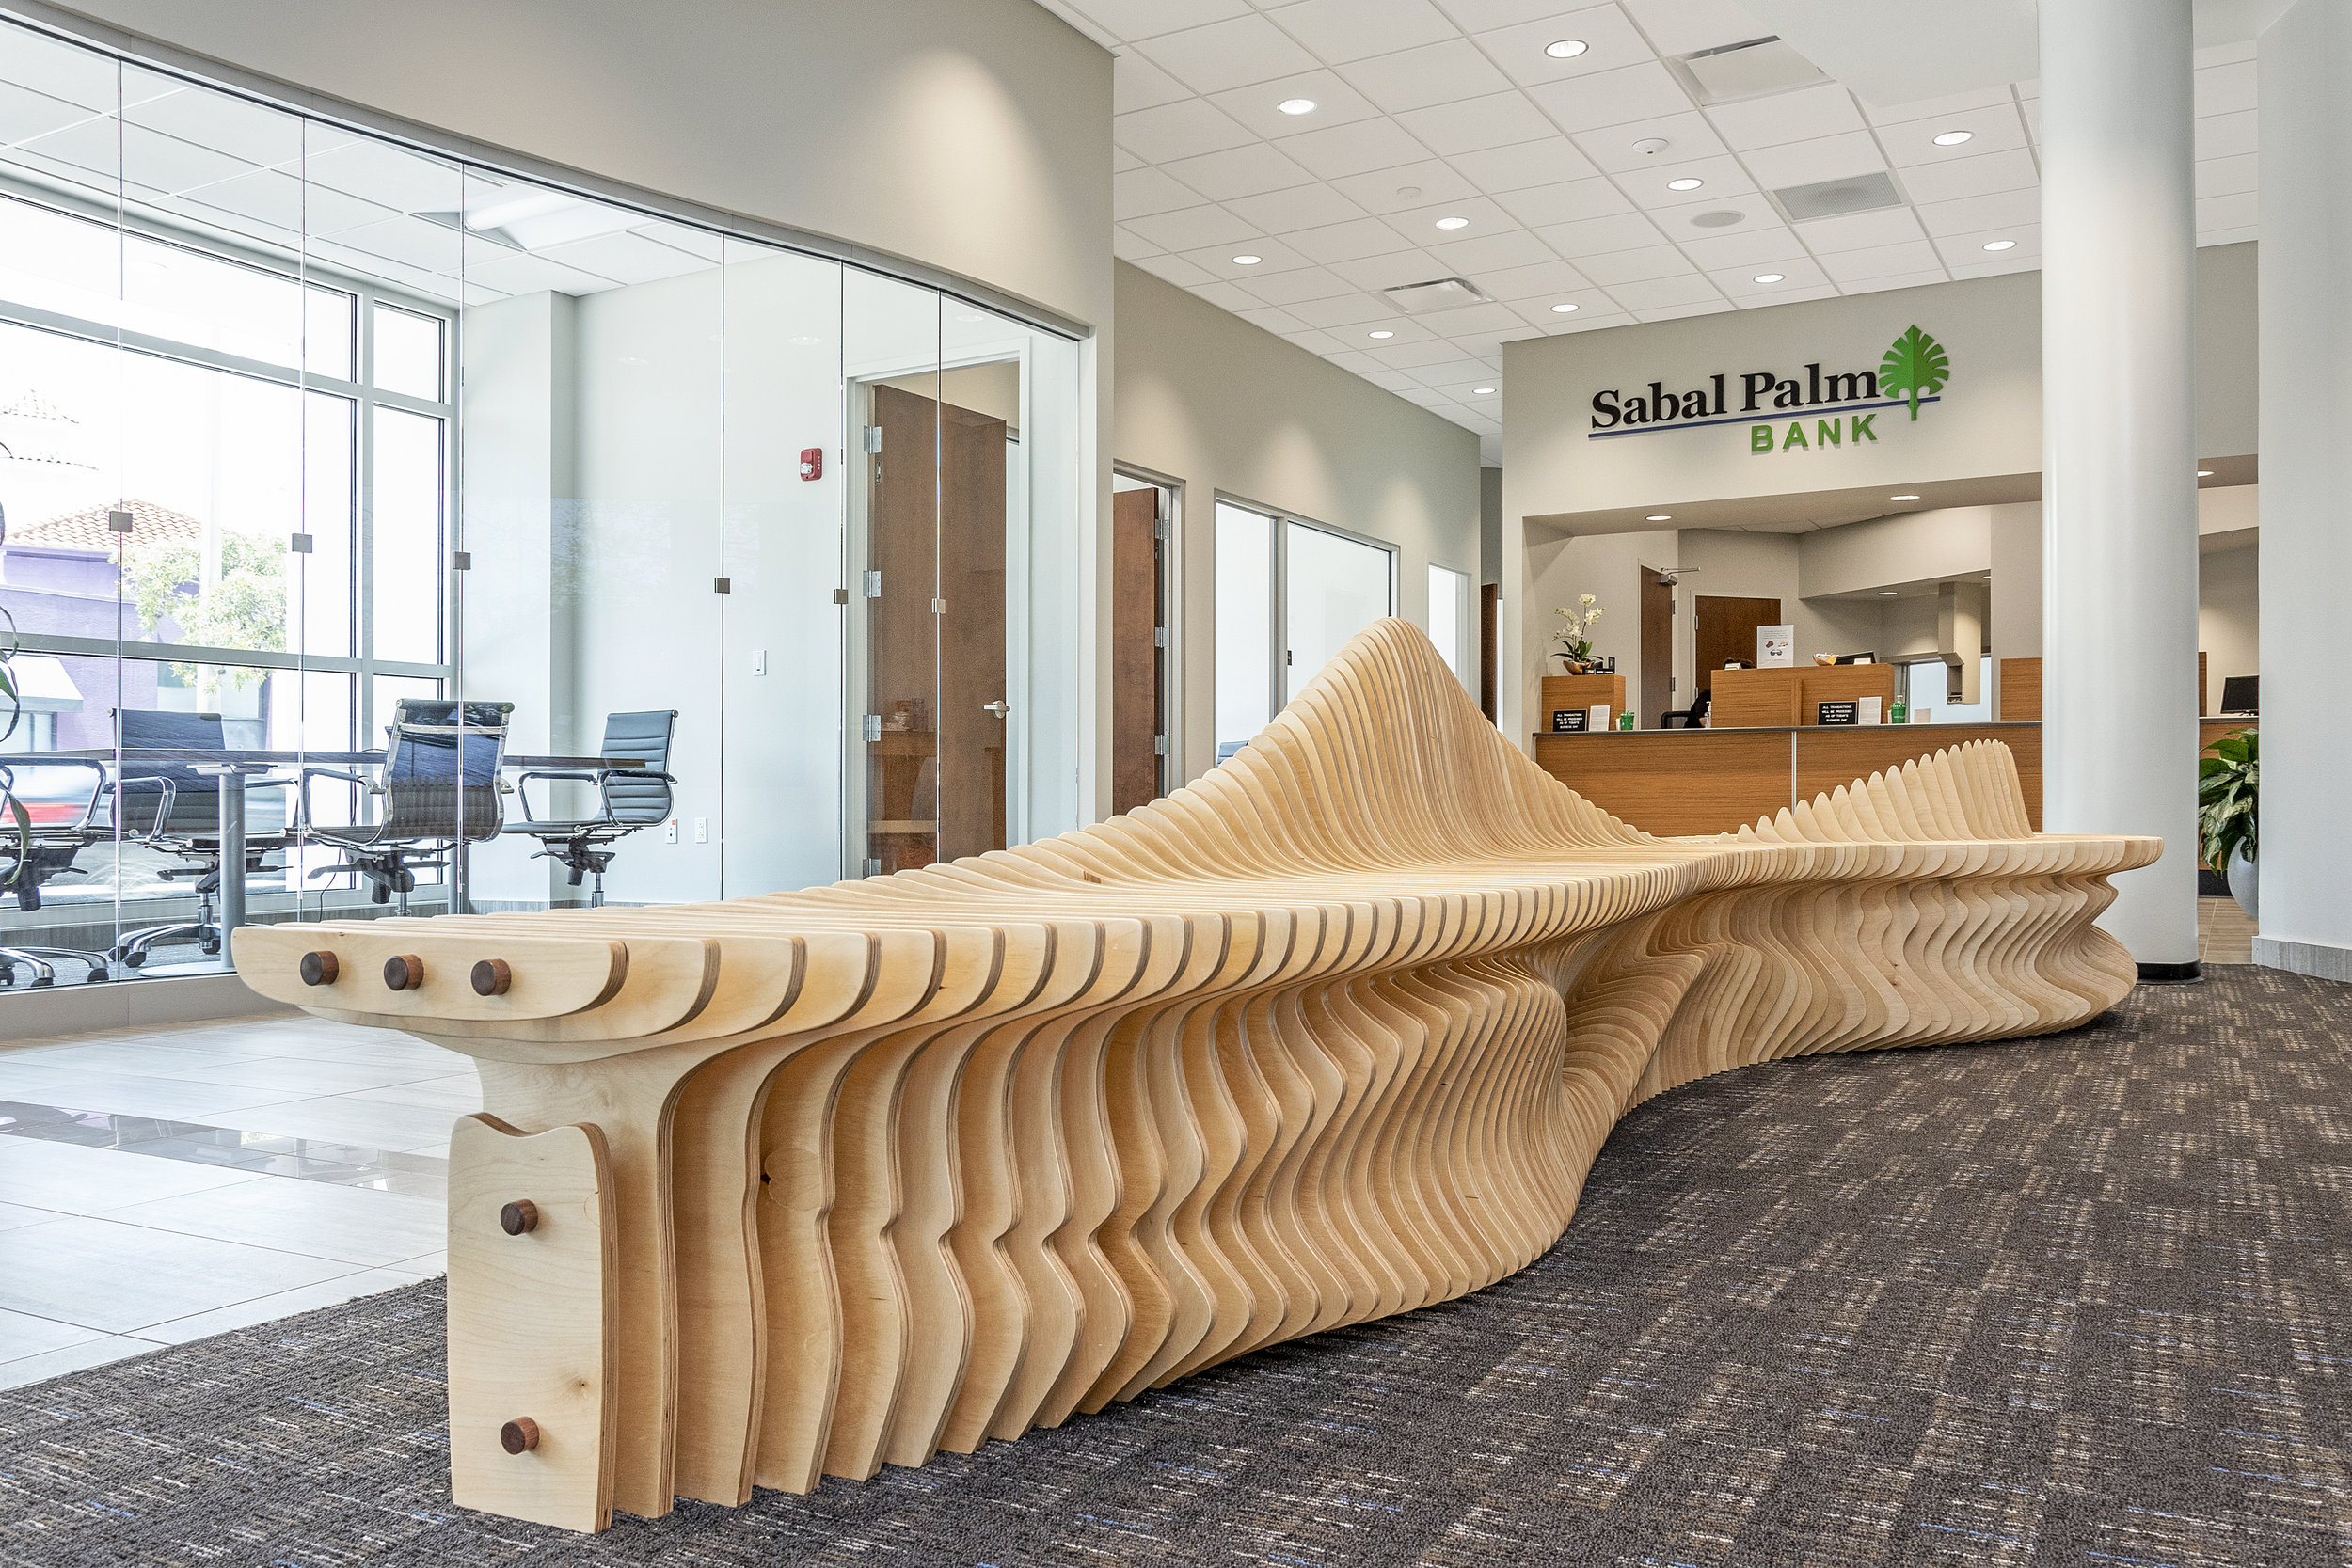 Nick Odonnell -6 handmade parametric furniture cnc router postmodern organic geometric plywood airport museum public bench terraform design.jpg